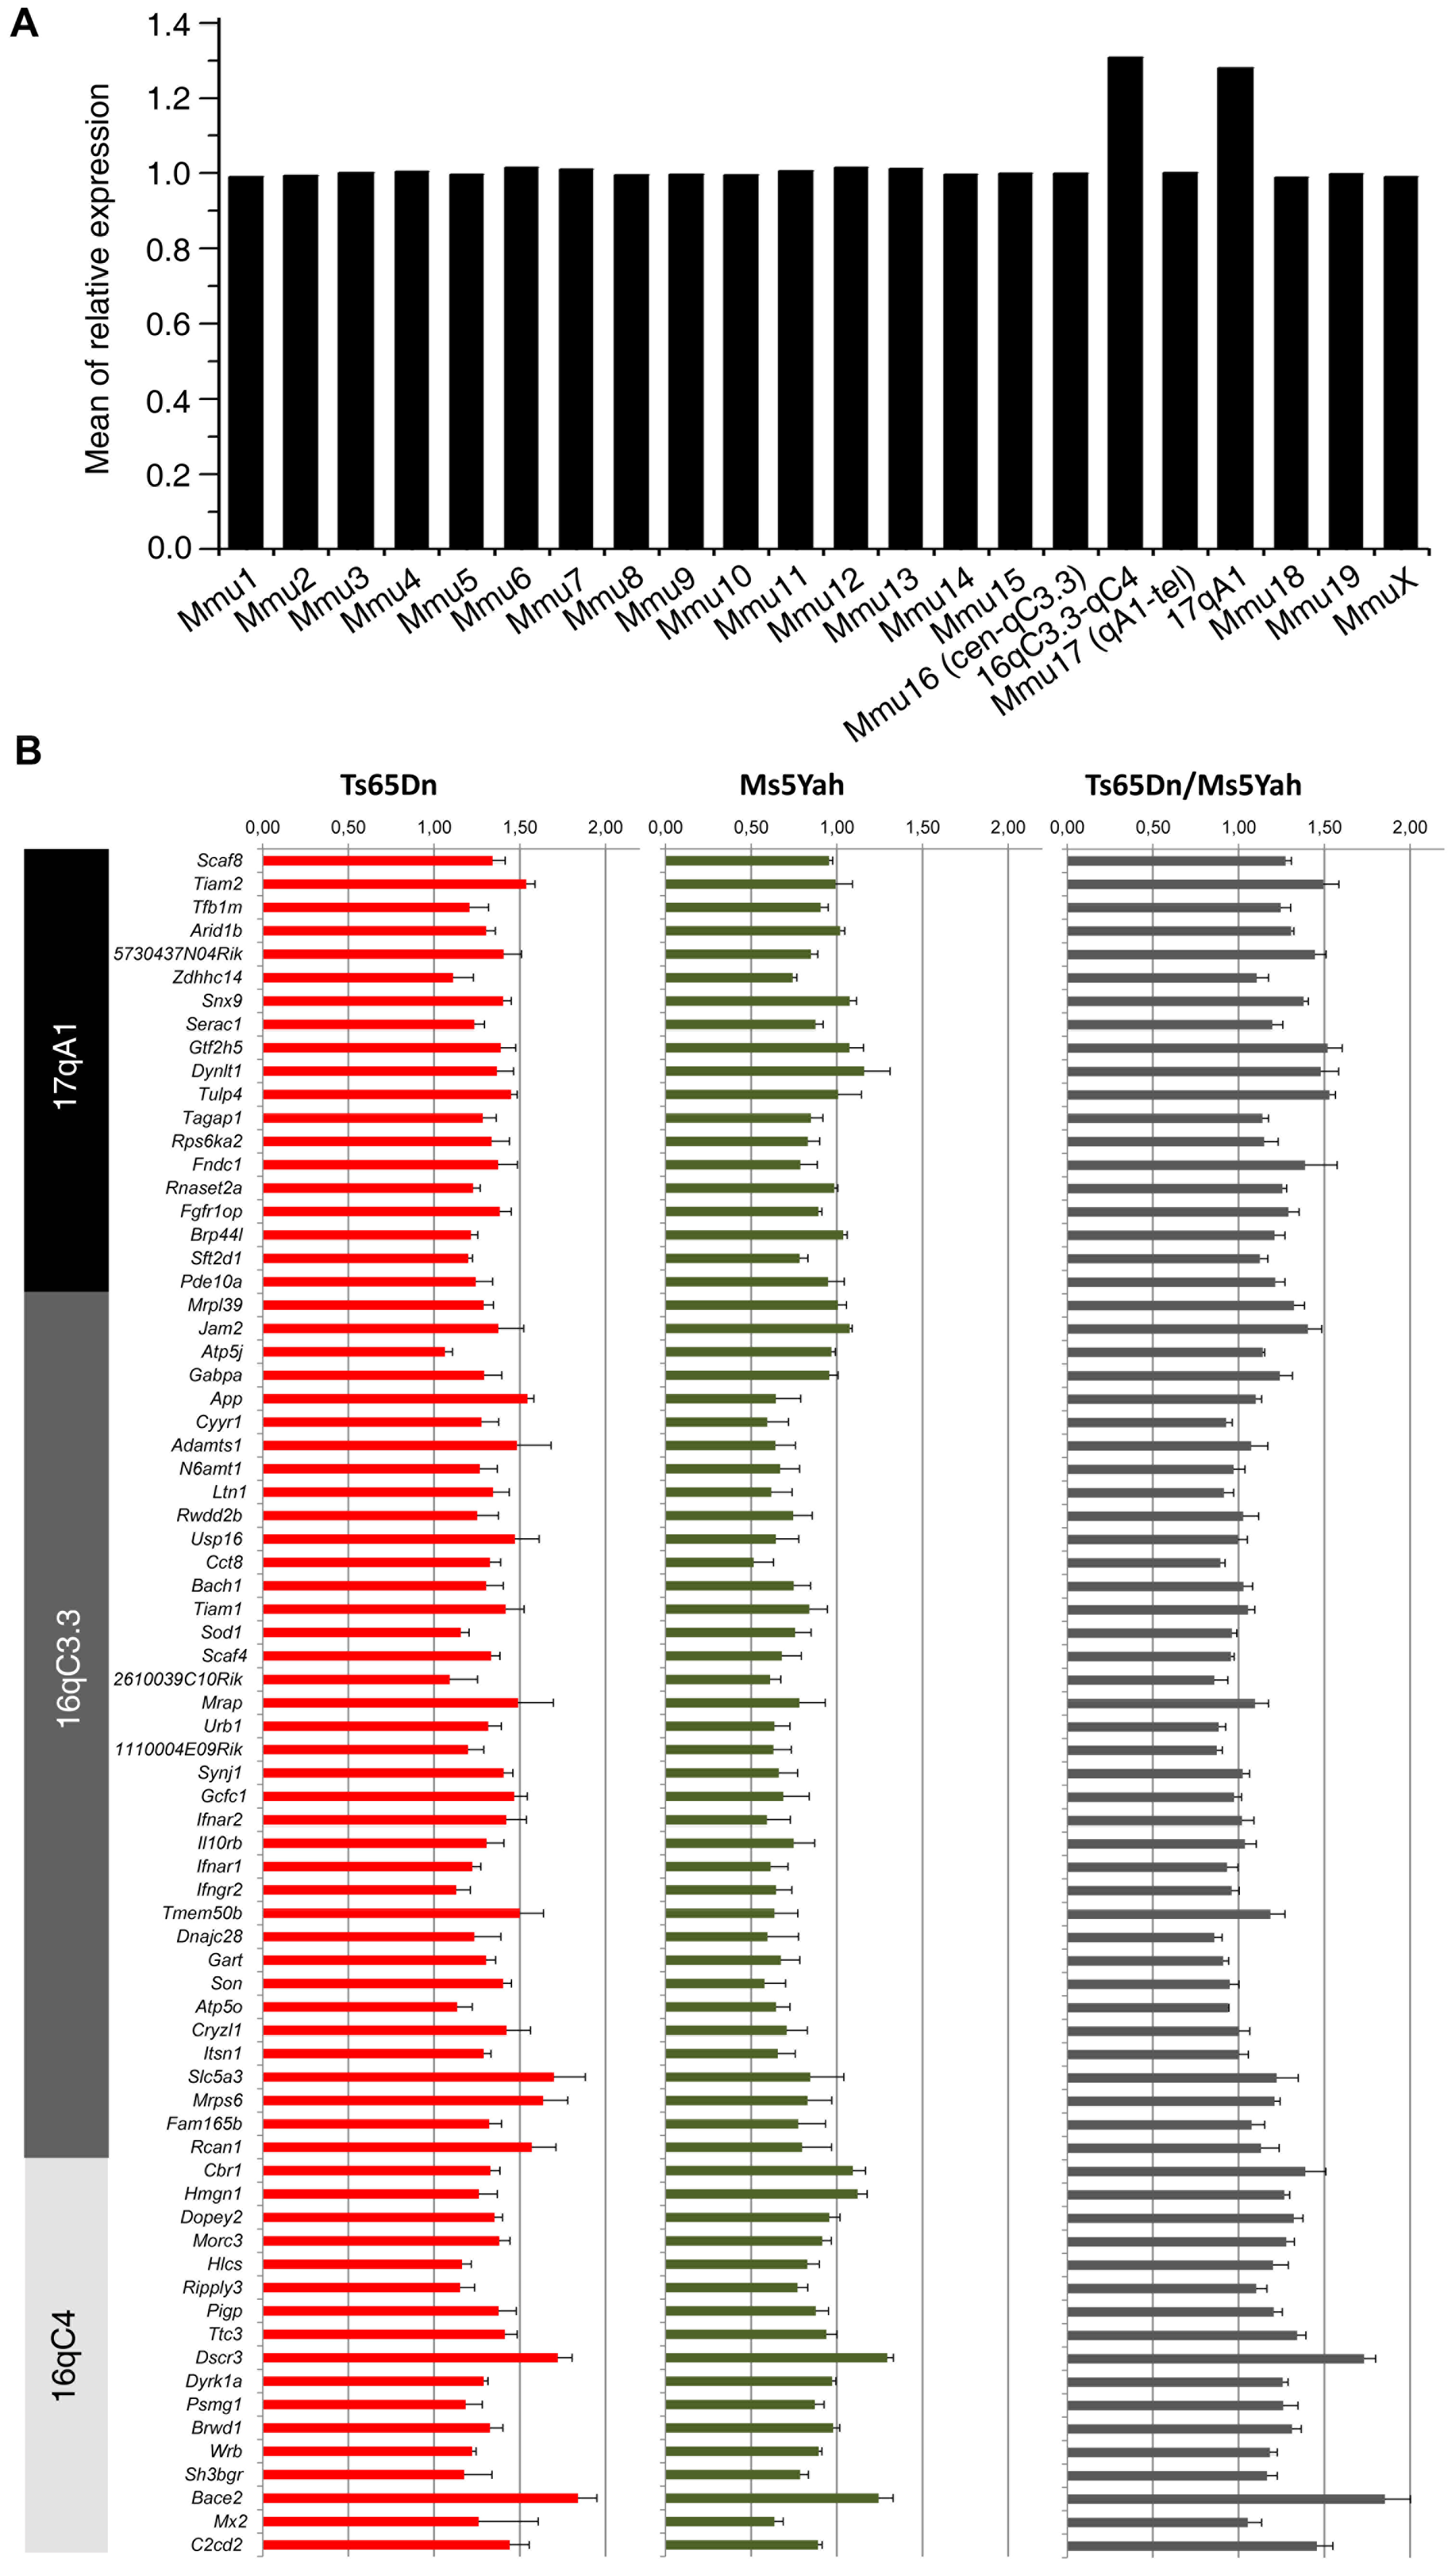 Expression profile of genes located on the Ts65Dn minichromosome obtained from whole-genome microarray expression analysis from whole adult mouse hearts.